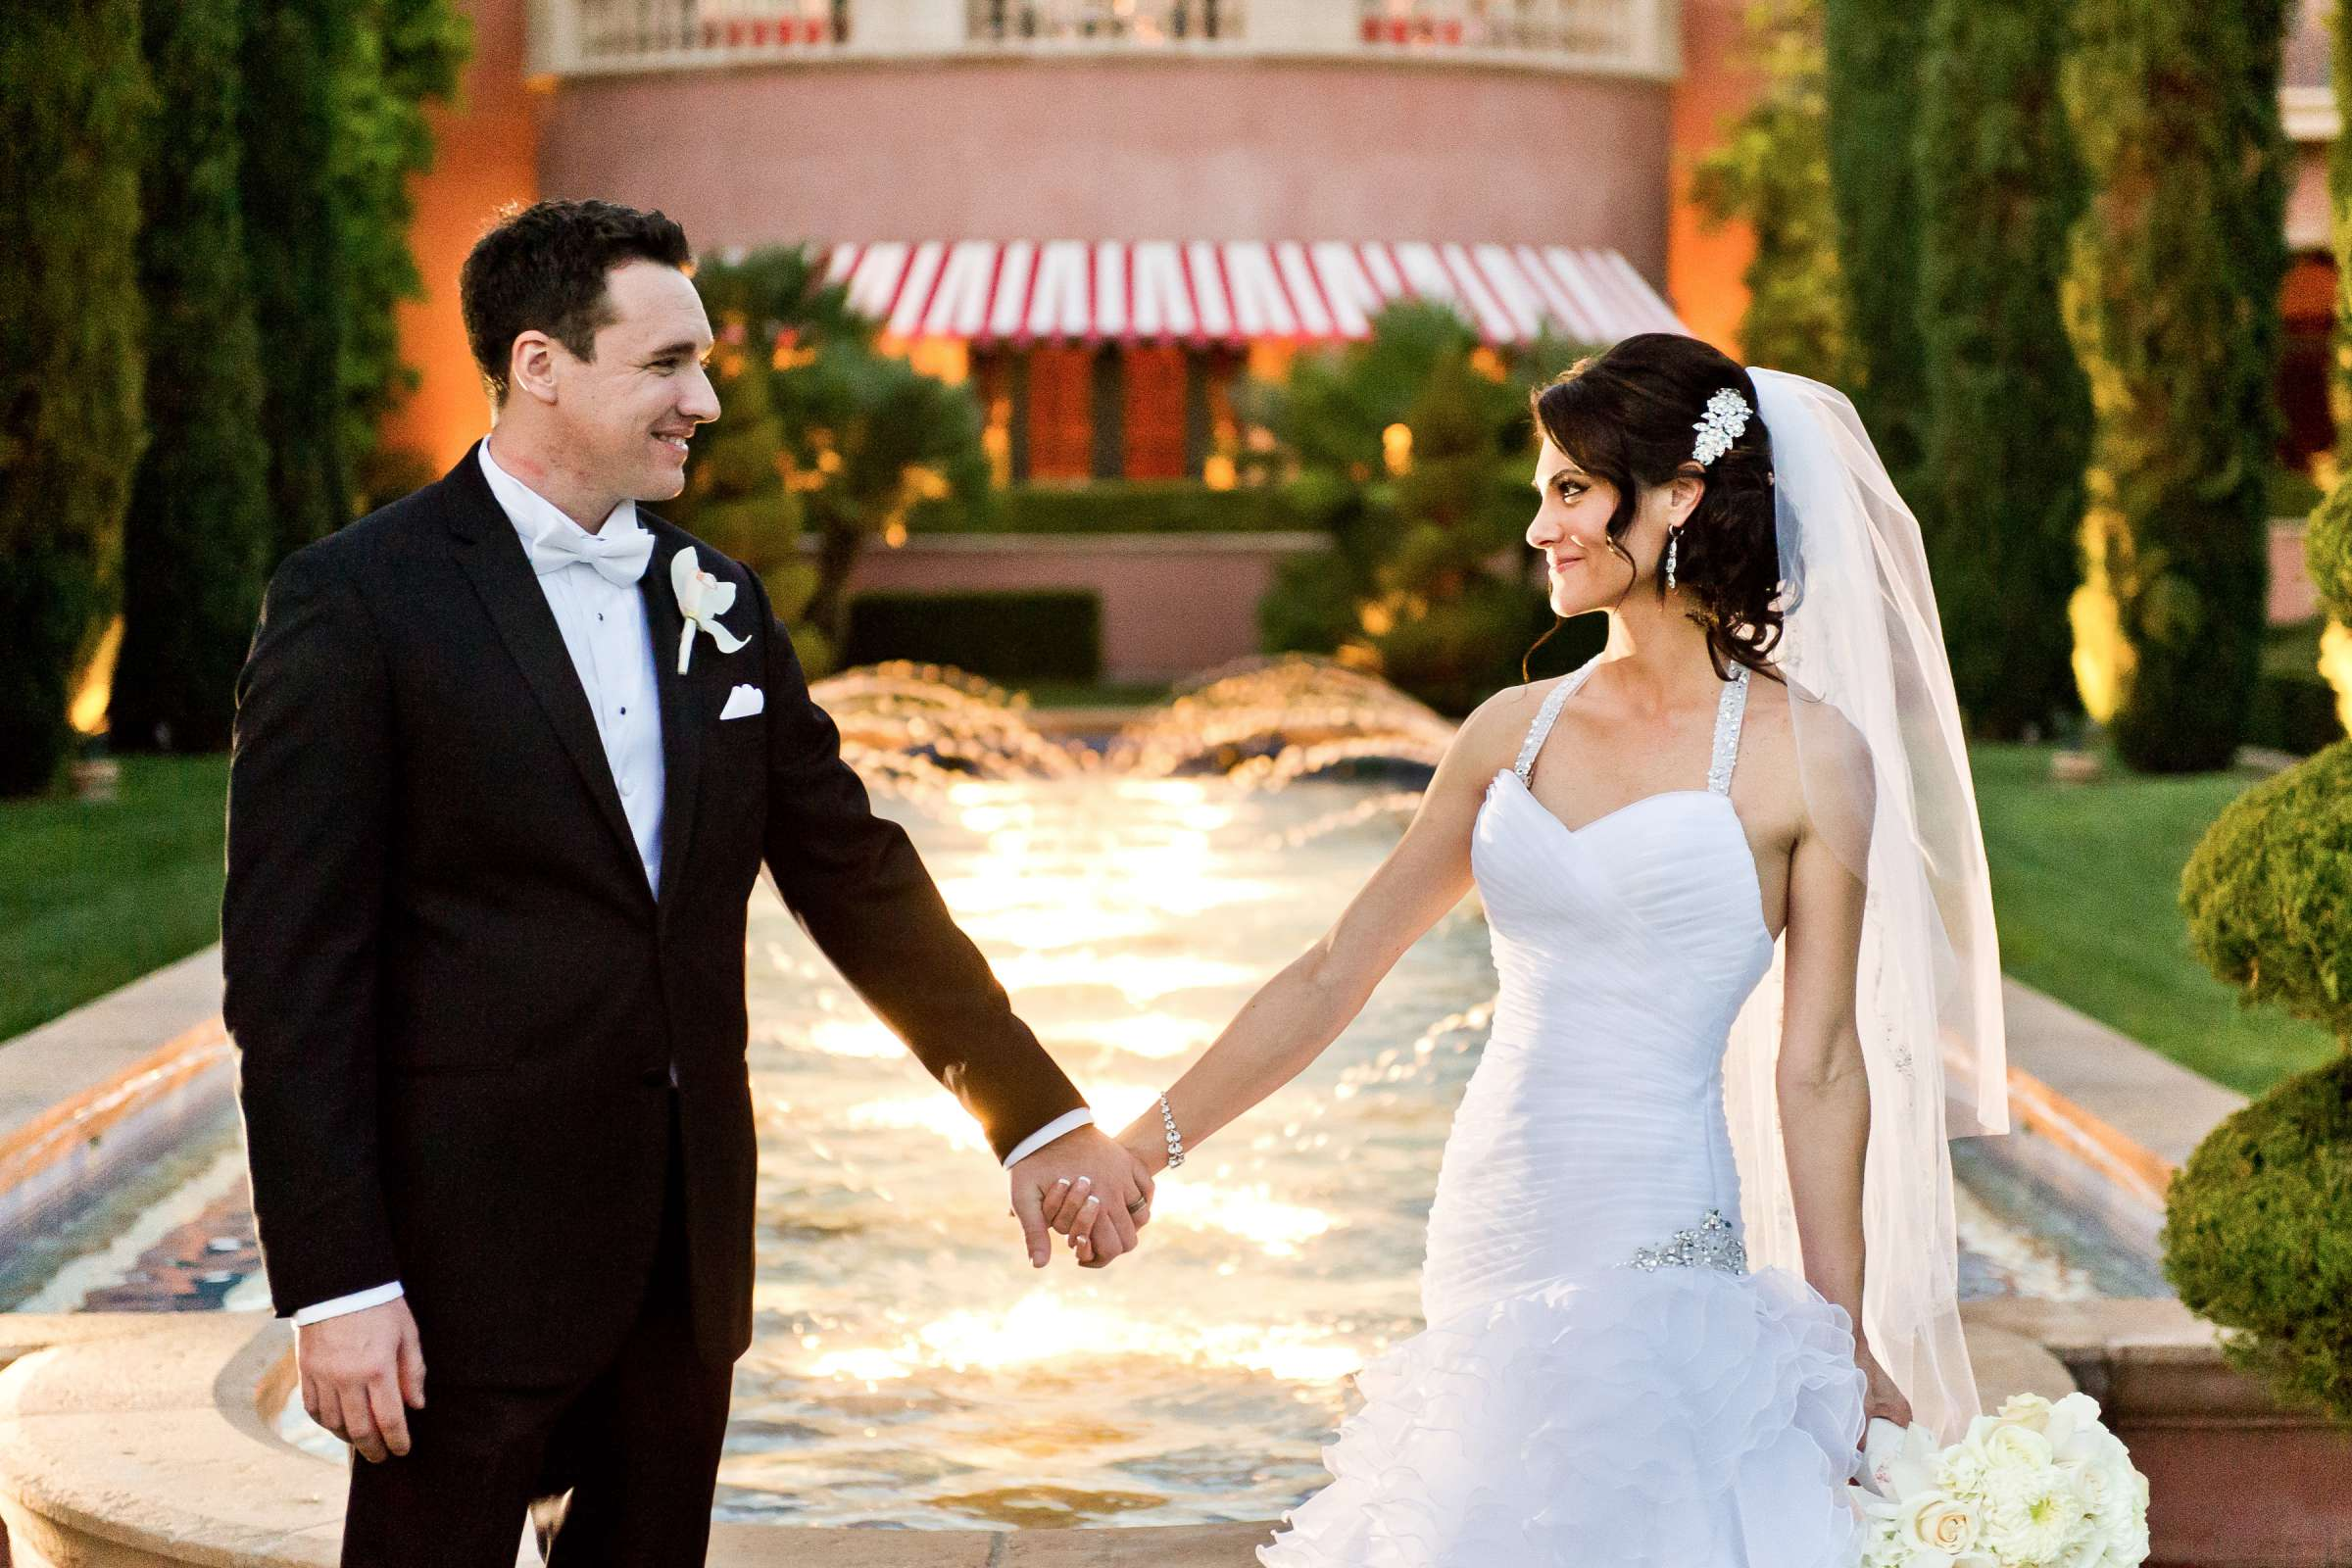 Fairmont Grand Del Mar Wedding, Angela and Tom Wedding Photo #1 by True Photography